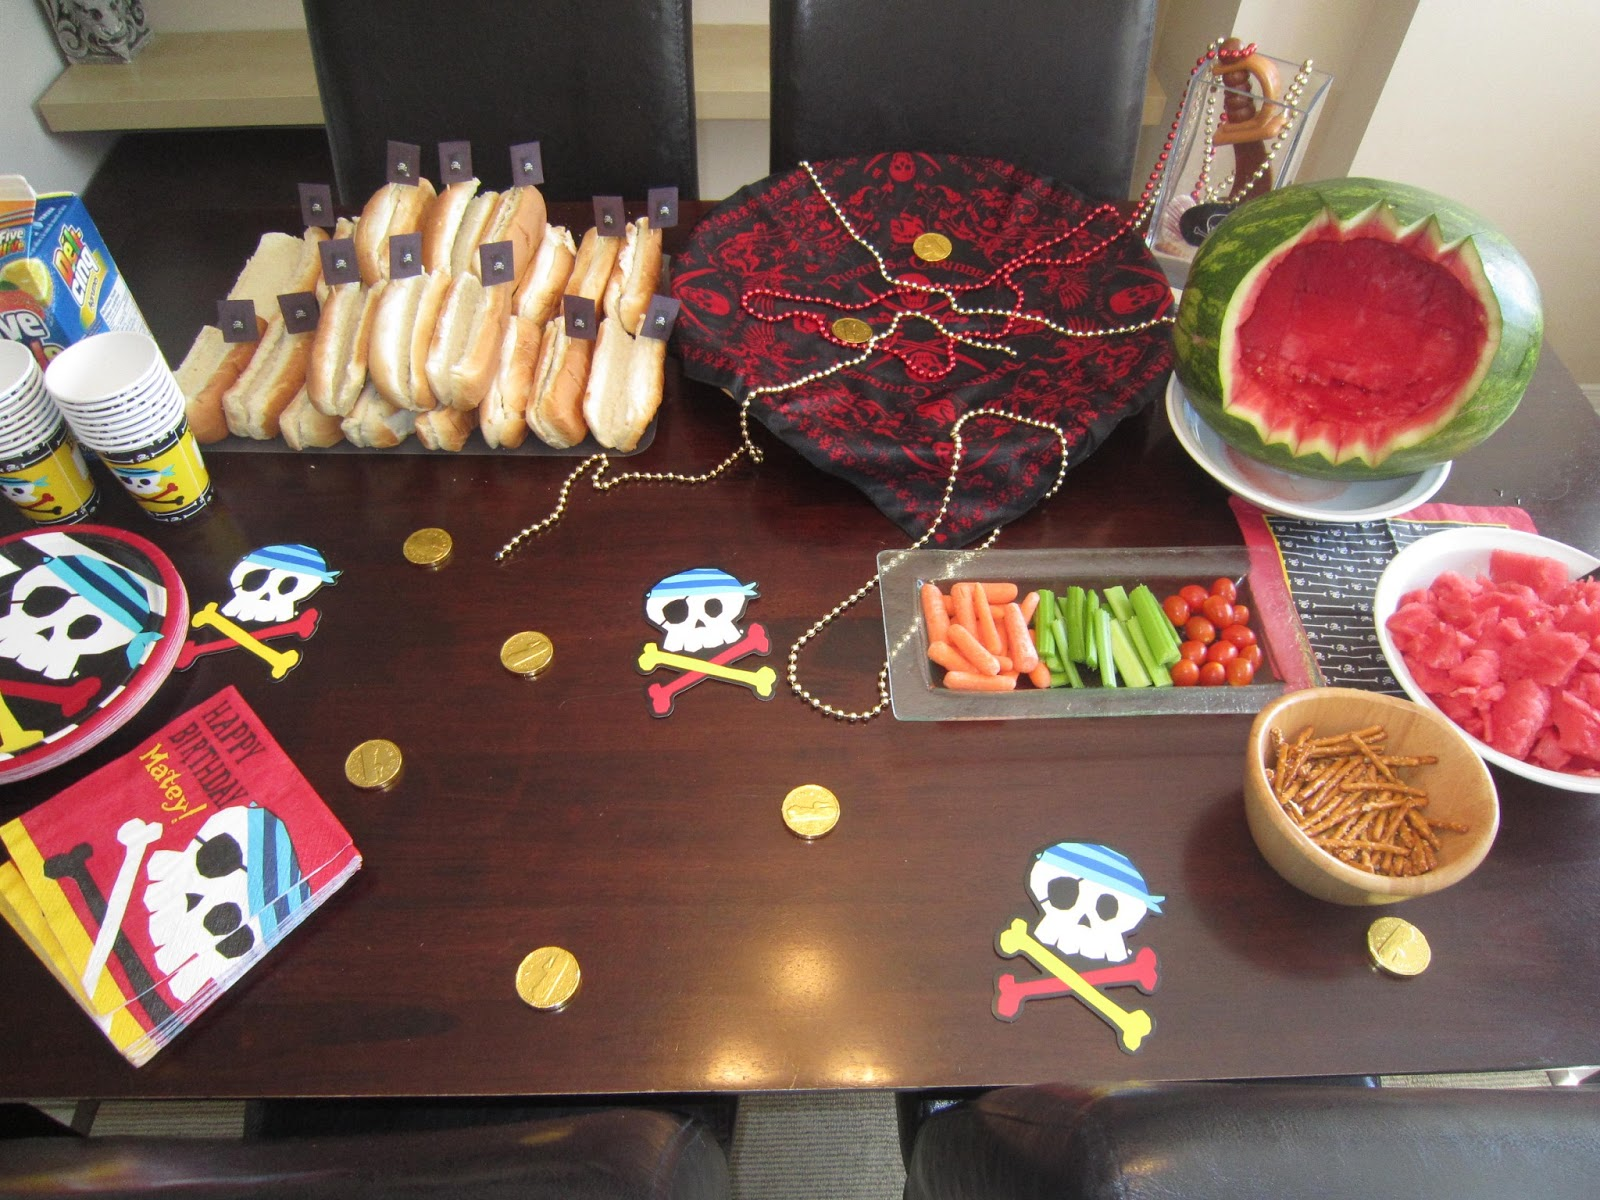 pirate ship hot doge, watermelon shark